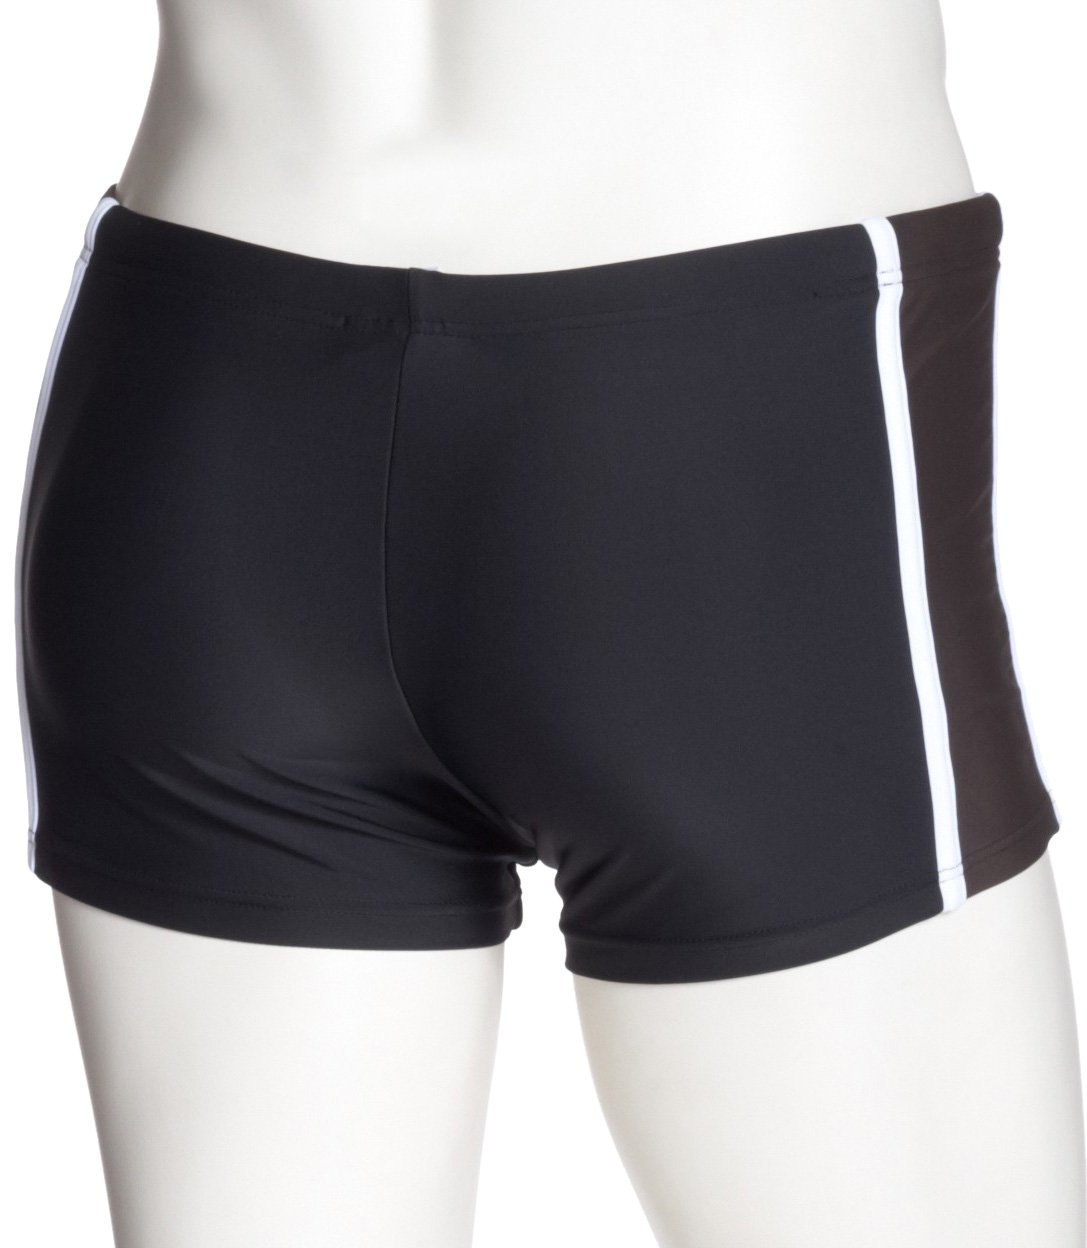 Chiemsee 14072-101 Men's Swim Shorts Kevin Solid